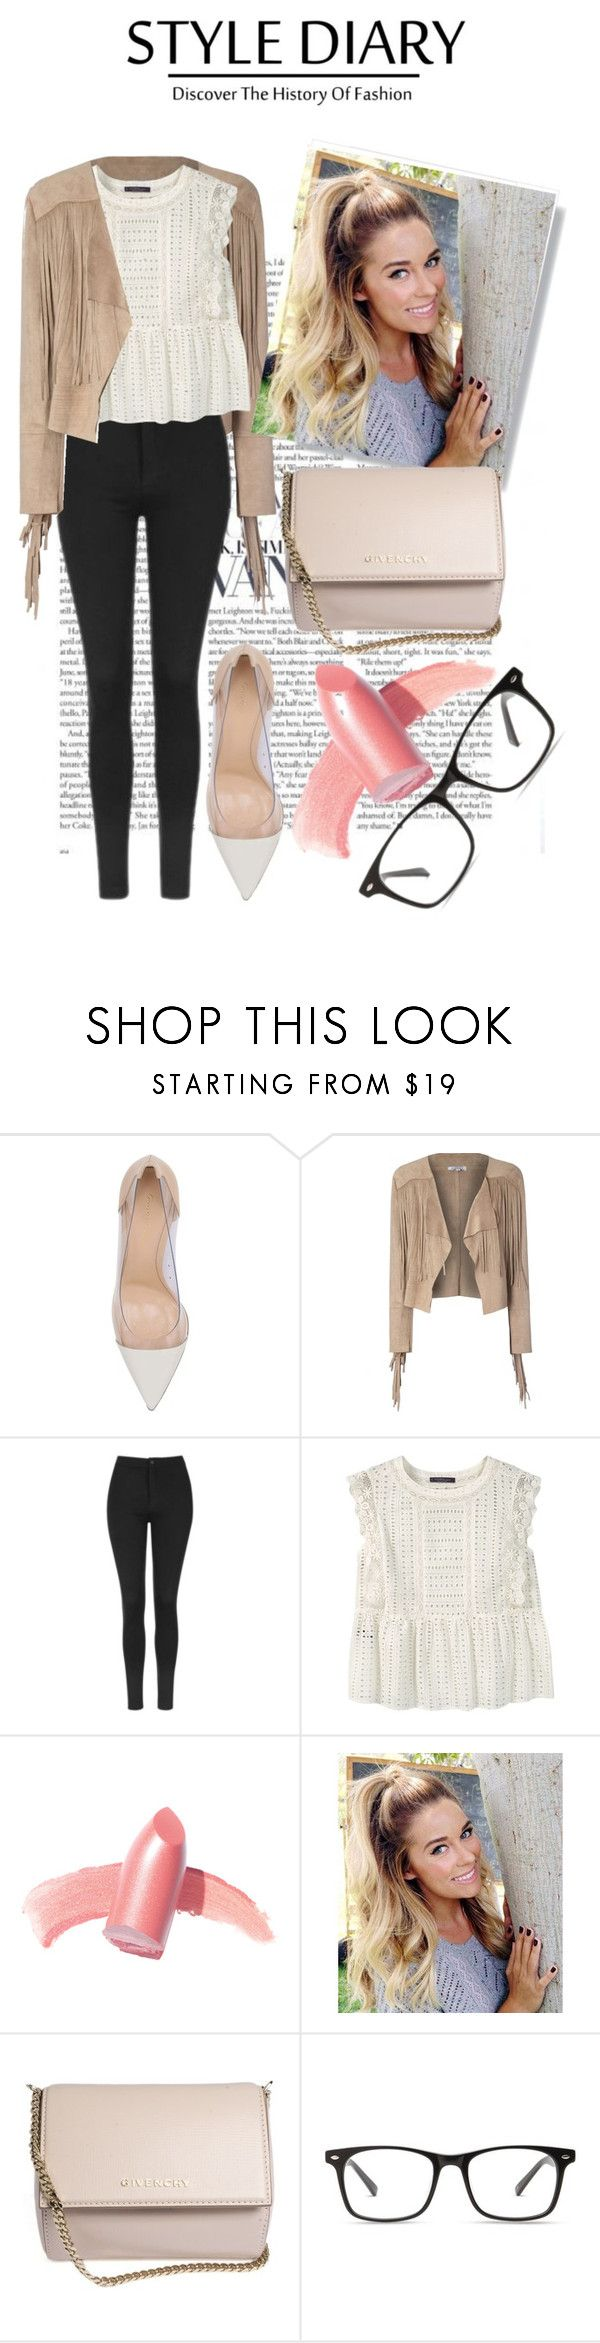 """""""Untitled No.  830"""" by catherine-megan-jones on Polyvore featuring Gianvito Rossi, Glamorous, Topshop, Violeta by Mango, Elizabeth Arden and Givenchy"""